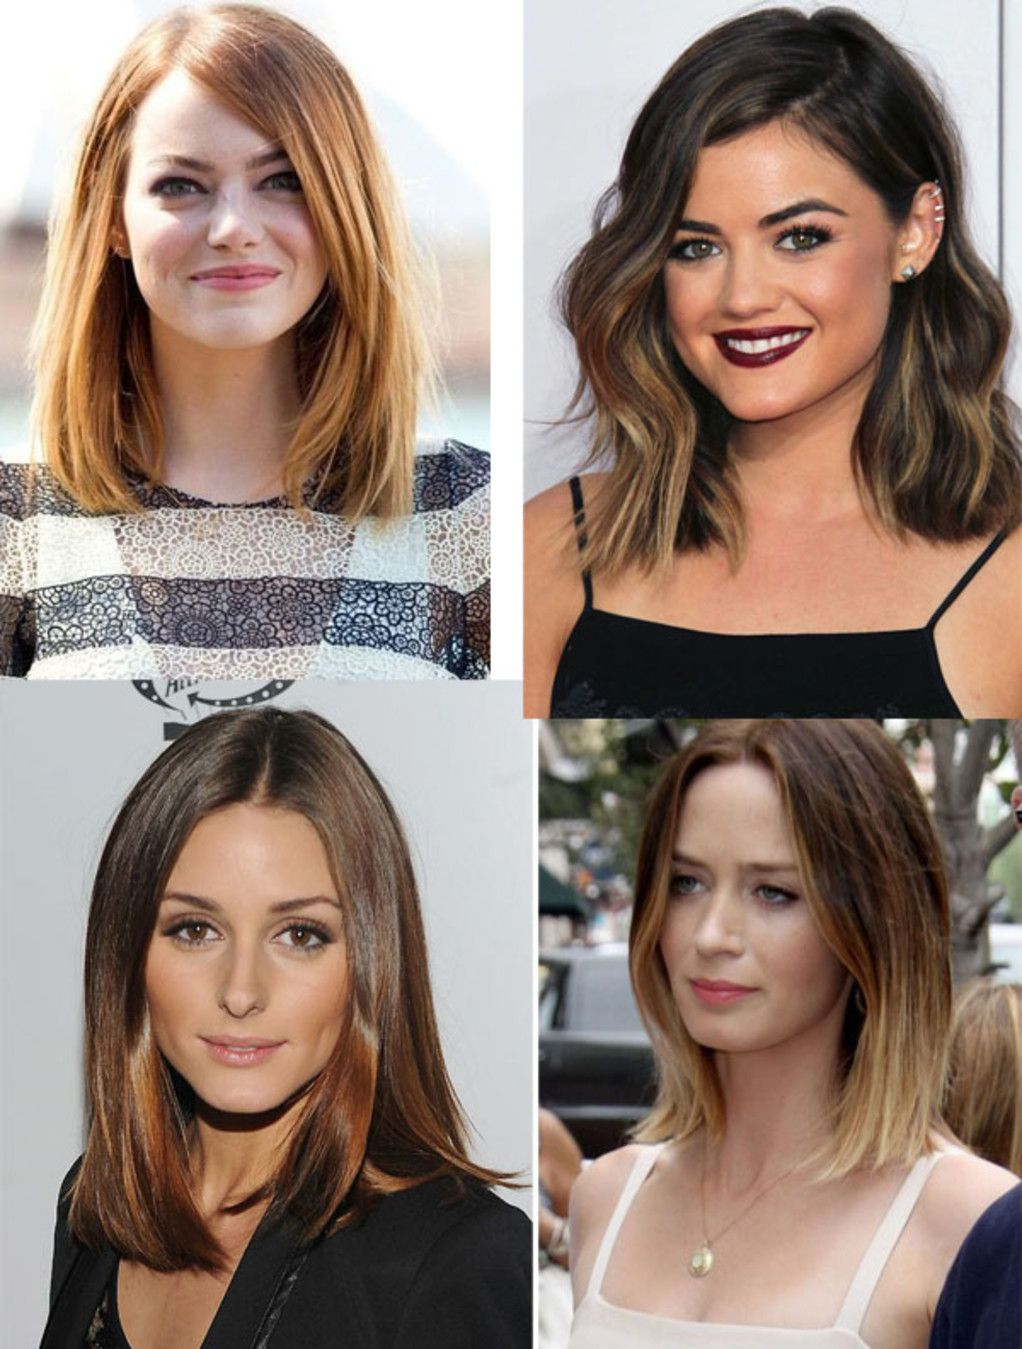 Discover The Best Haircut For Your Face Shape Oval Face Haircuts Oval Face Hairstyles Face Shape Hairstyles